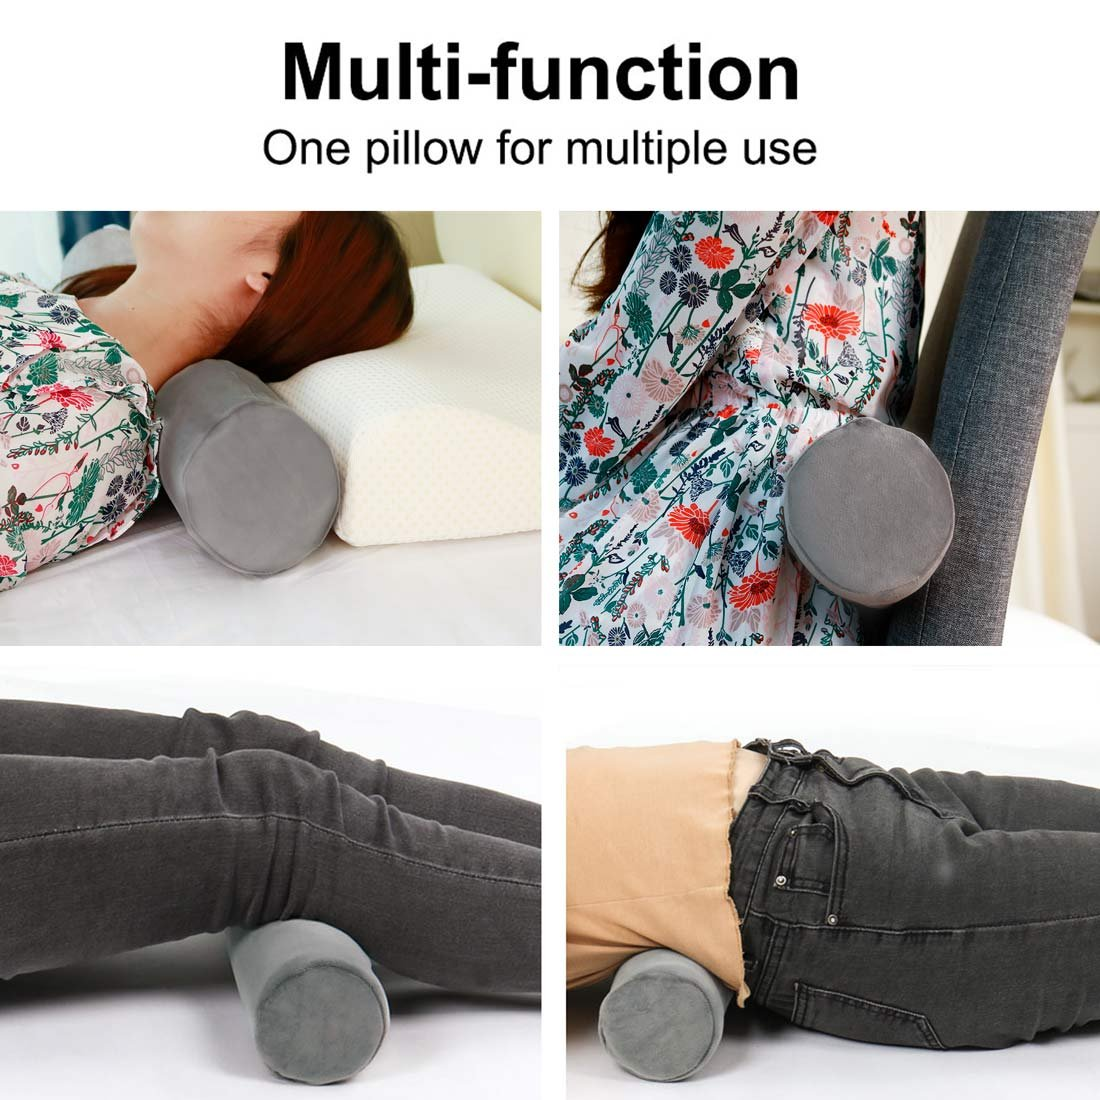 15 x 3, Dark Blue uxcell/® Round Memory Foam Pillow Cervical Roll Bolster Neck Head Support Pillow Lumbar Bolster Leg Spacer with Washable Flannel Cover